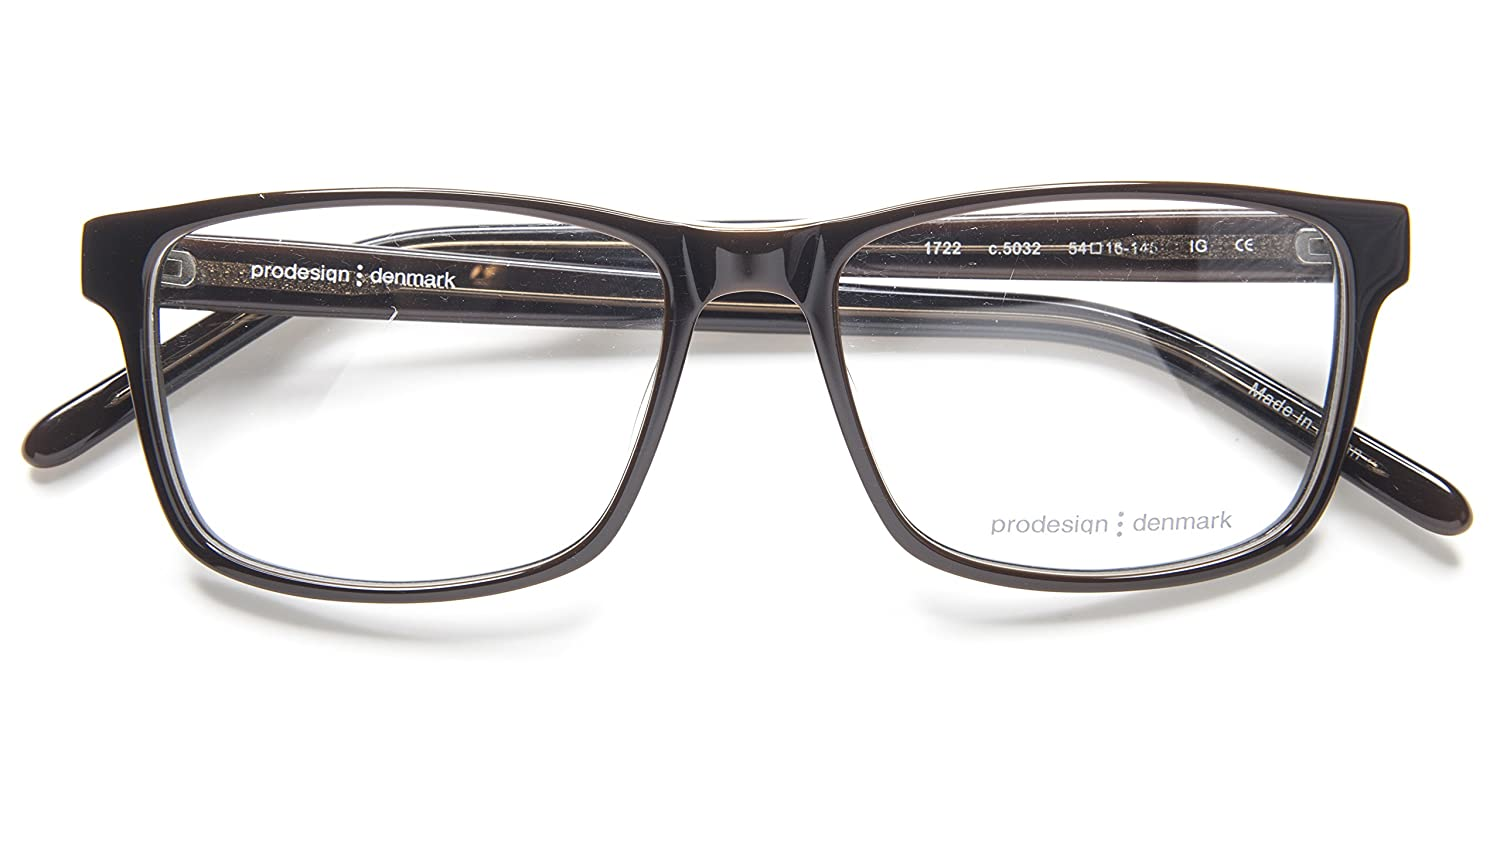 470a662b744 Amazon.com  NEW PRODESIGN DENMARK 1722 c.5032 BROWN EYEGLASSES FRAME 54-16-145  IG B39 Japan  Clothing